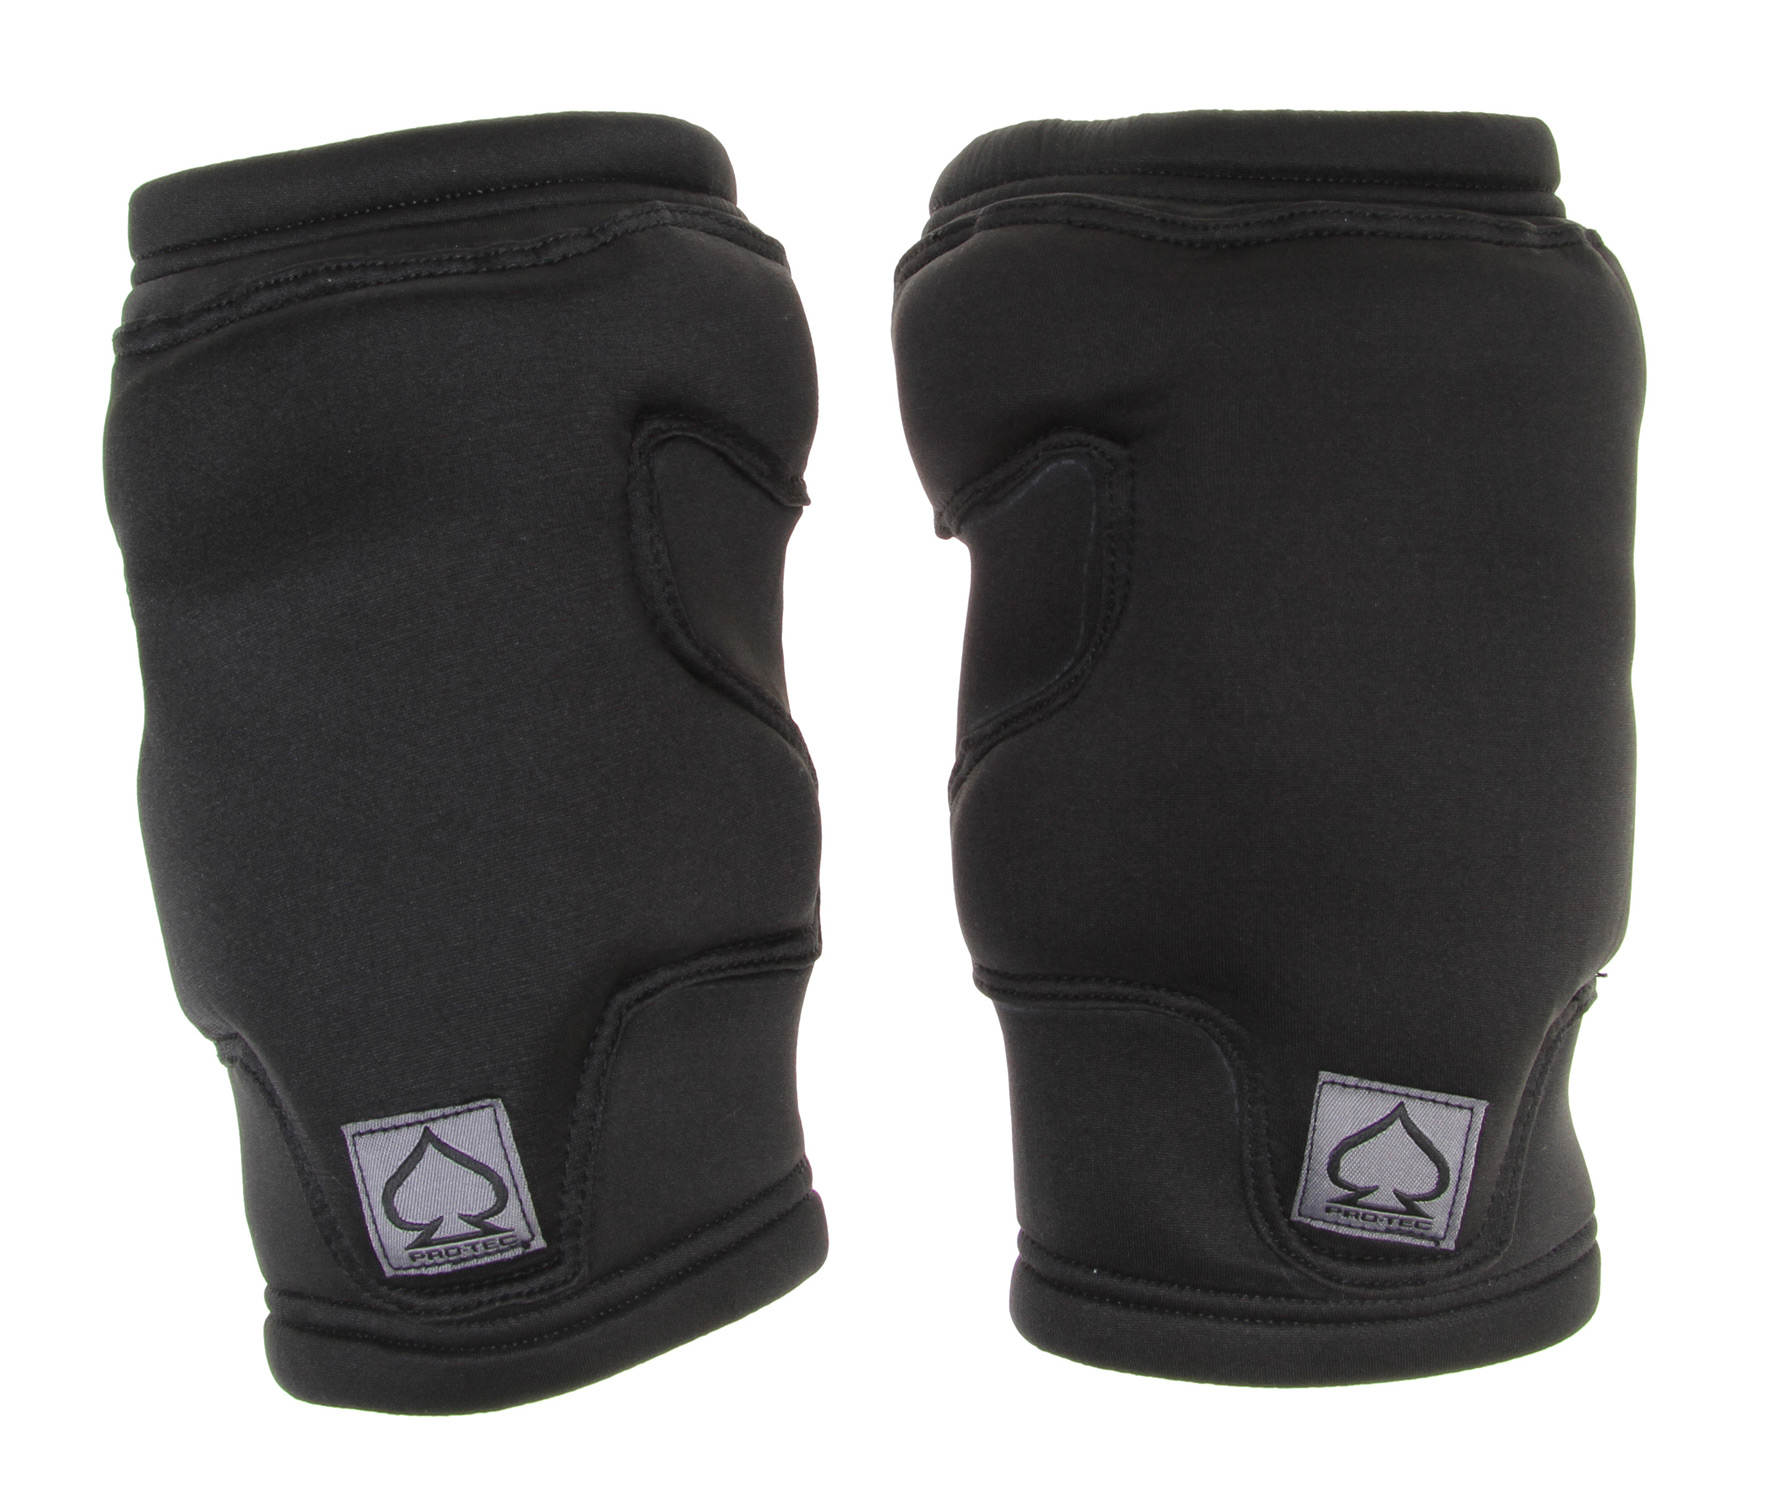 All-around knee pads for soft, comfortable joint protection. The flexible and non-constricting design provides protection from hard conditions while still allowing your knees to maintain complete mobility and range of motion.Key Features of the Protec IPS Knee Pad: Anatomical, Flexible And Lightweight Design Breathable, Moisture-Wicking Material Washable, Easy On And Off - $29.99